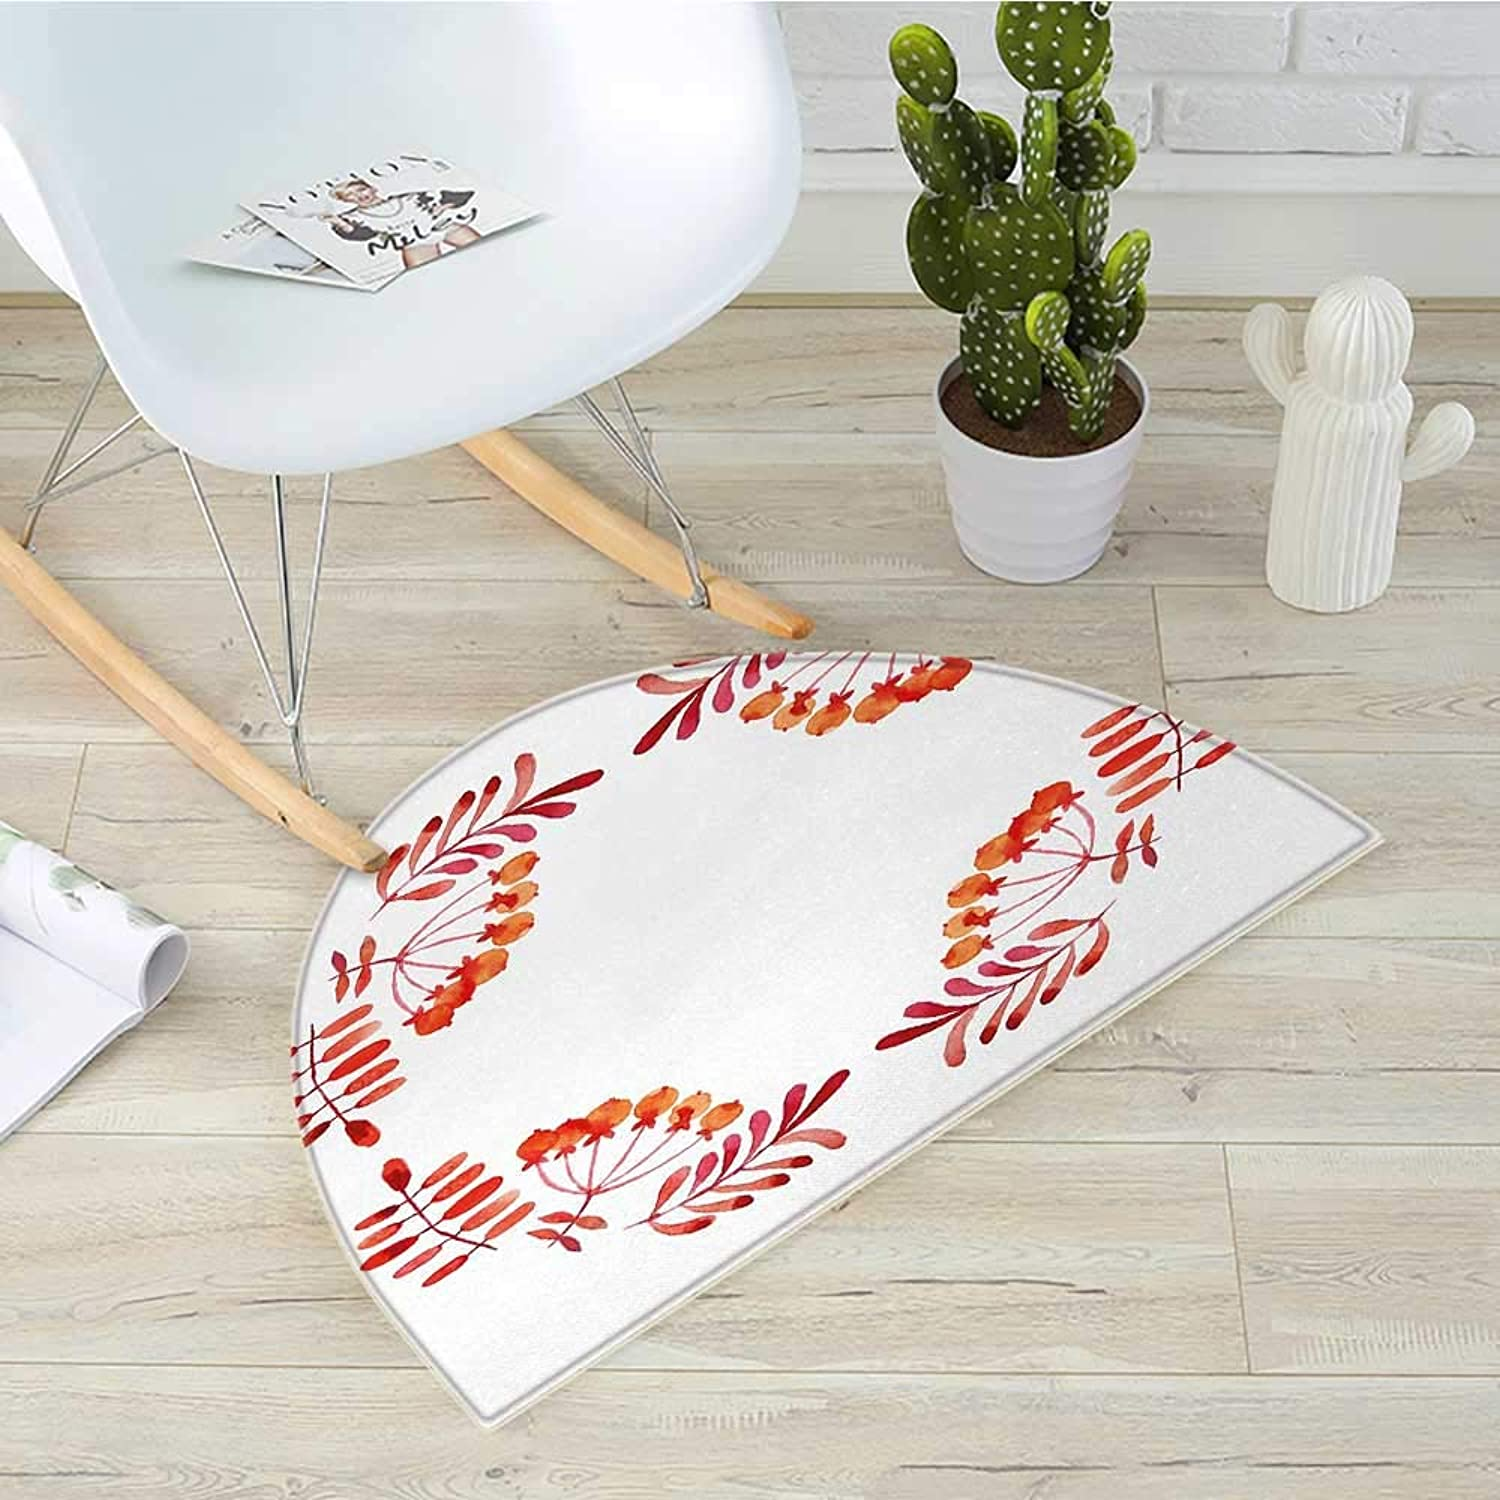 Rowan Semicircle Doormat Watercolor Style Artistic Leaves with Fruits Square Frame Design Autumn colors Halfmoon doormats H 51.1  xD 76.7  Red orange White